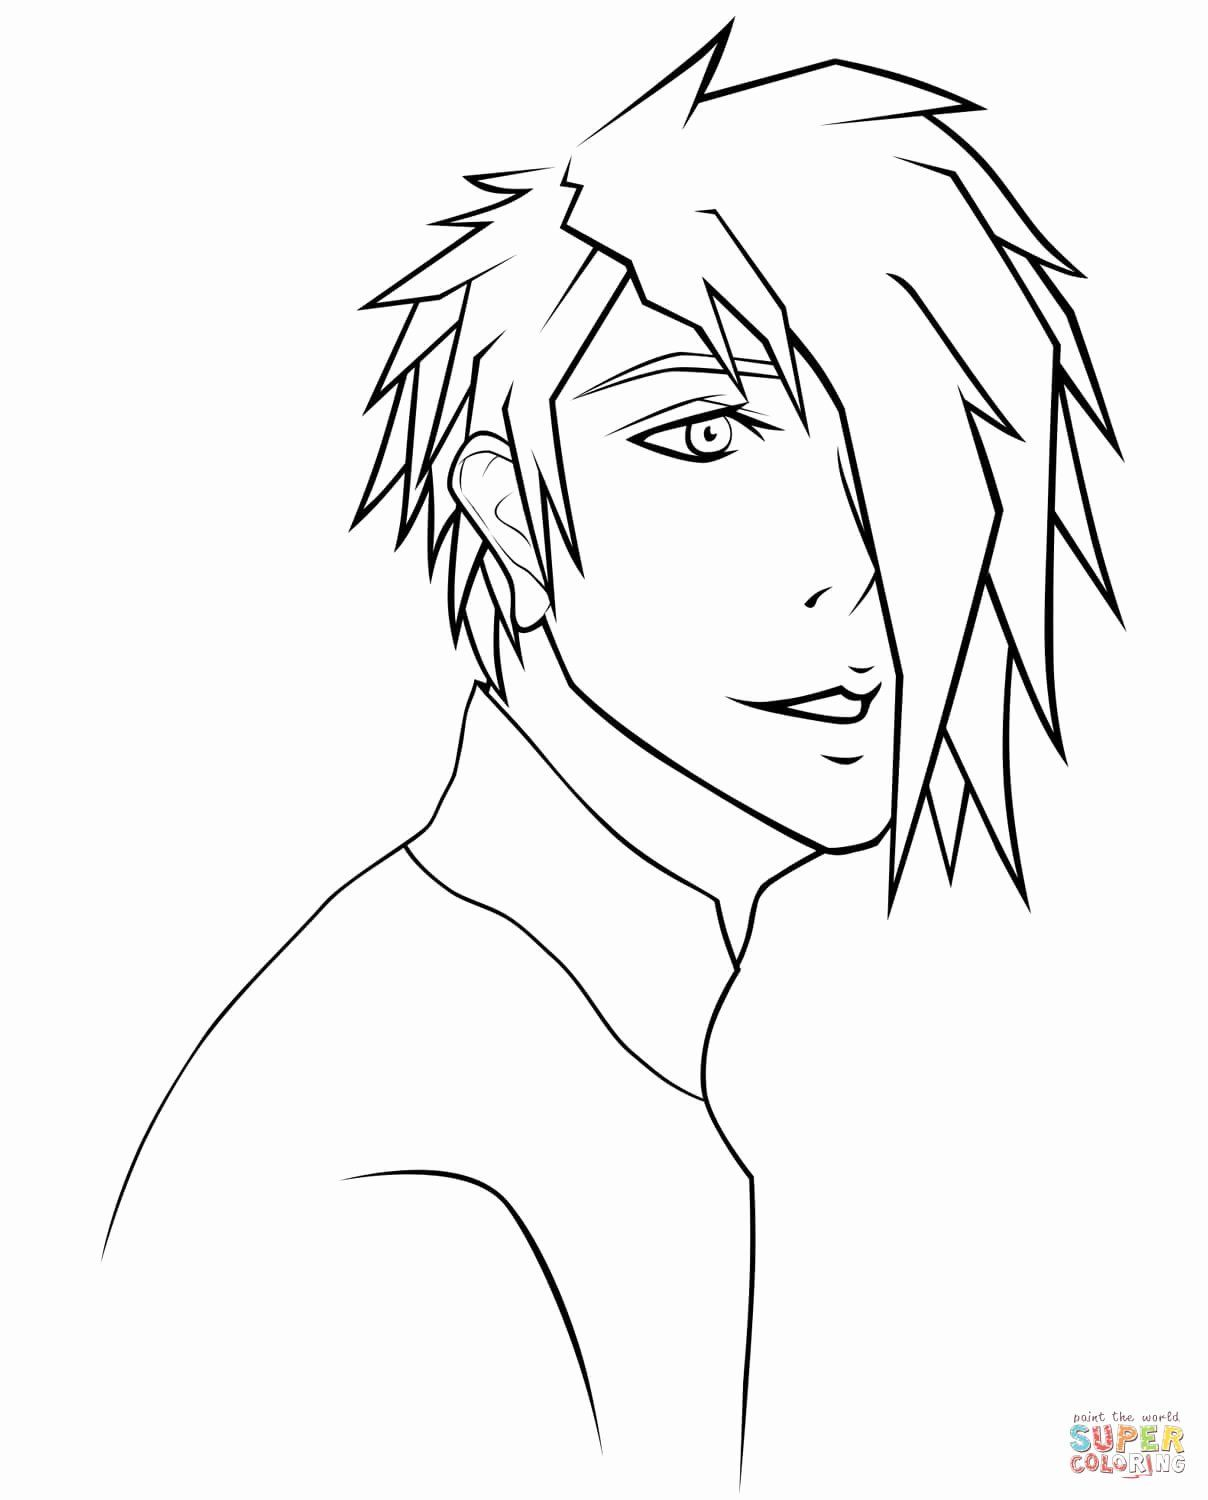 Coloring Pages Printable For Boys New Rj Anime Boy Portrait By Sugarcoated Lipops Coloring Page Coloring Pages For Boys Anime Guys Shirtless Anime Drawings Boy